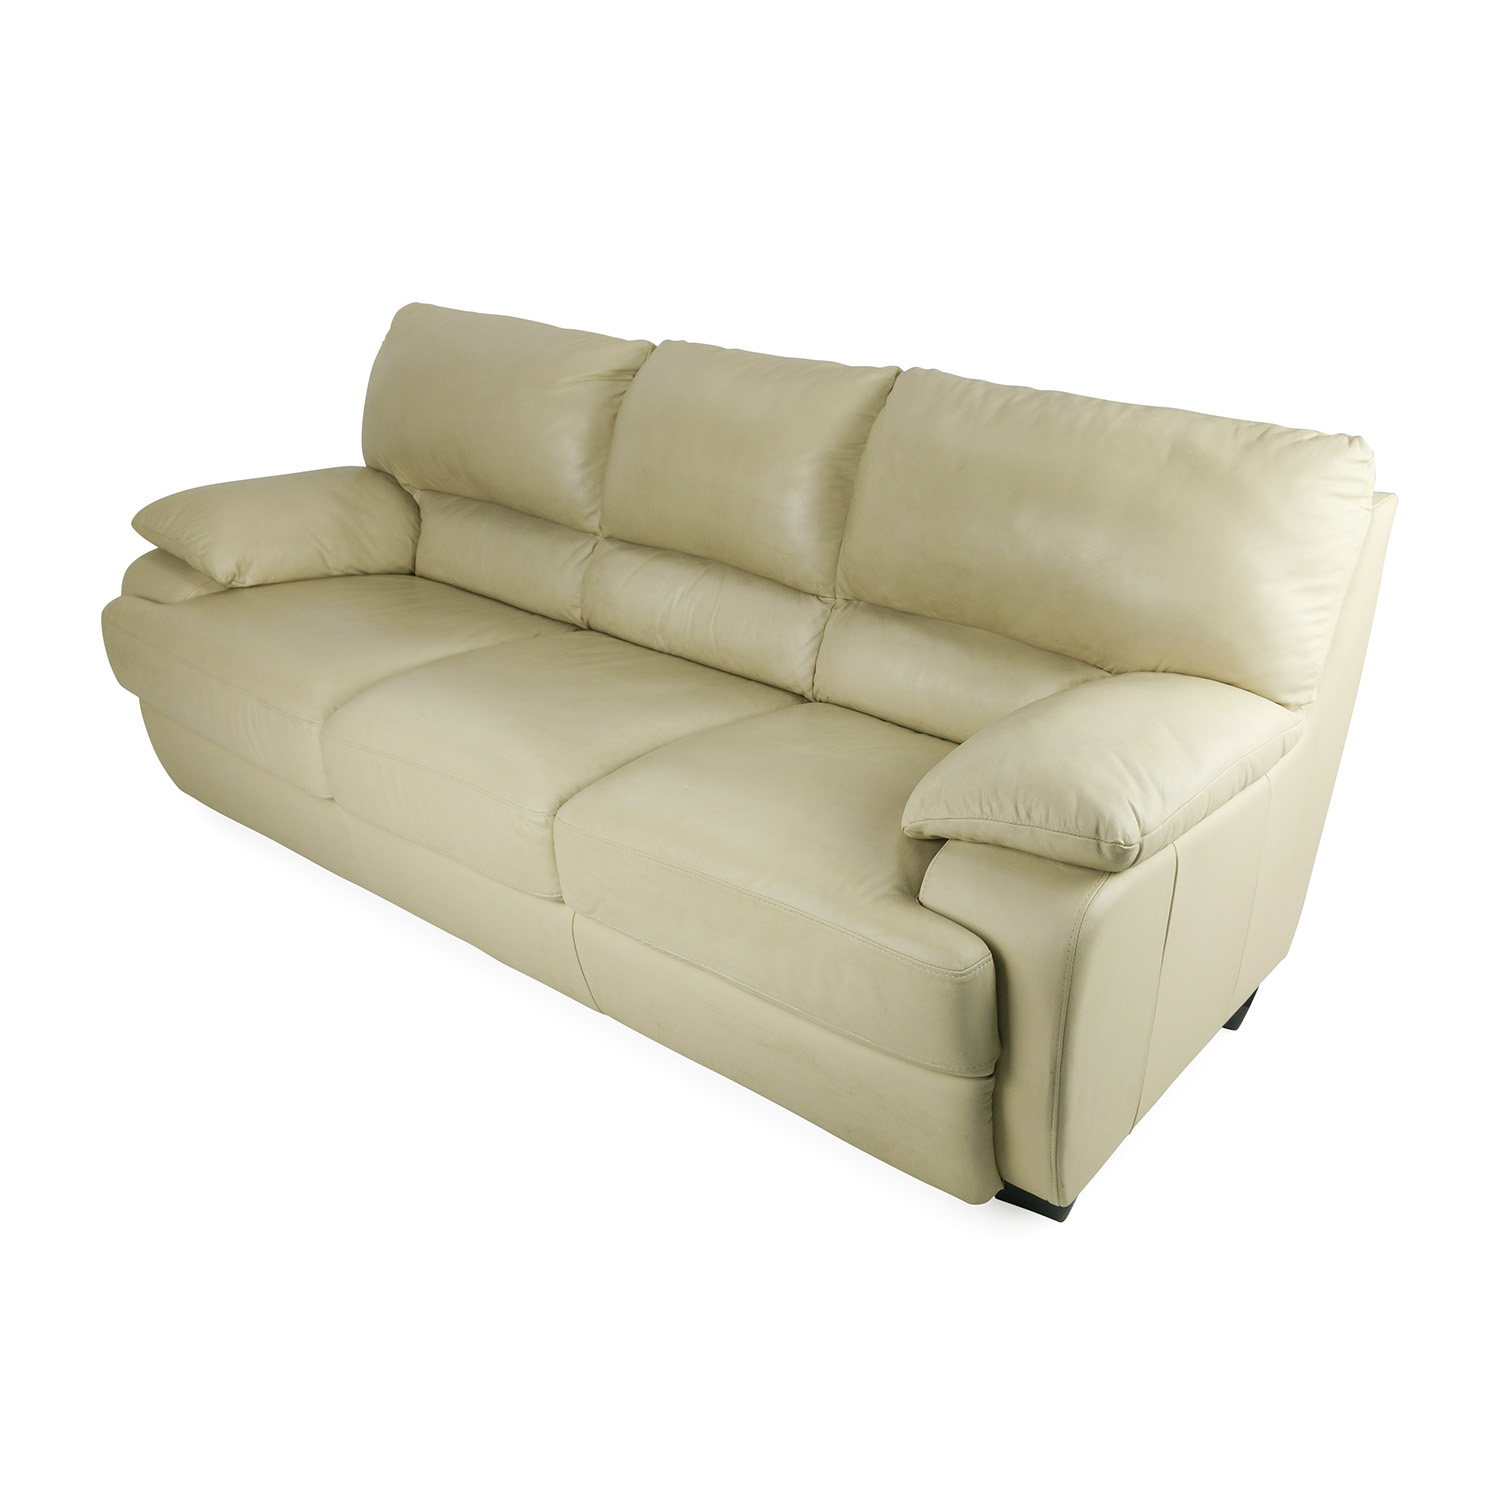 75 off tan leather couch sofas